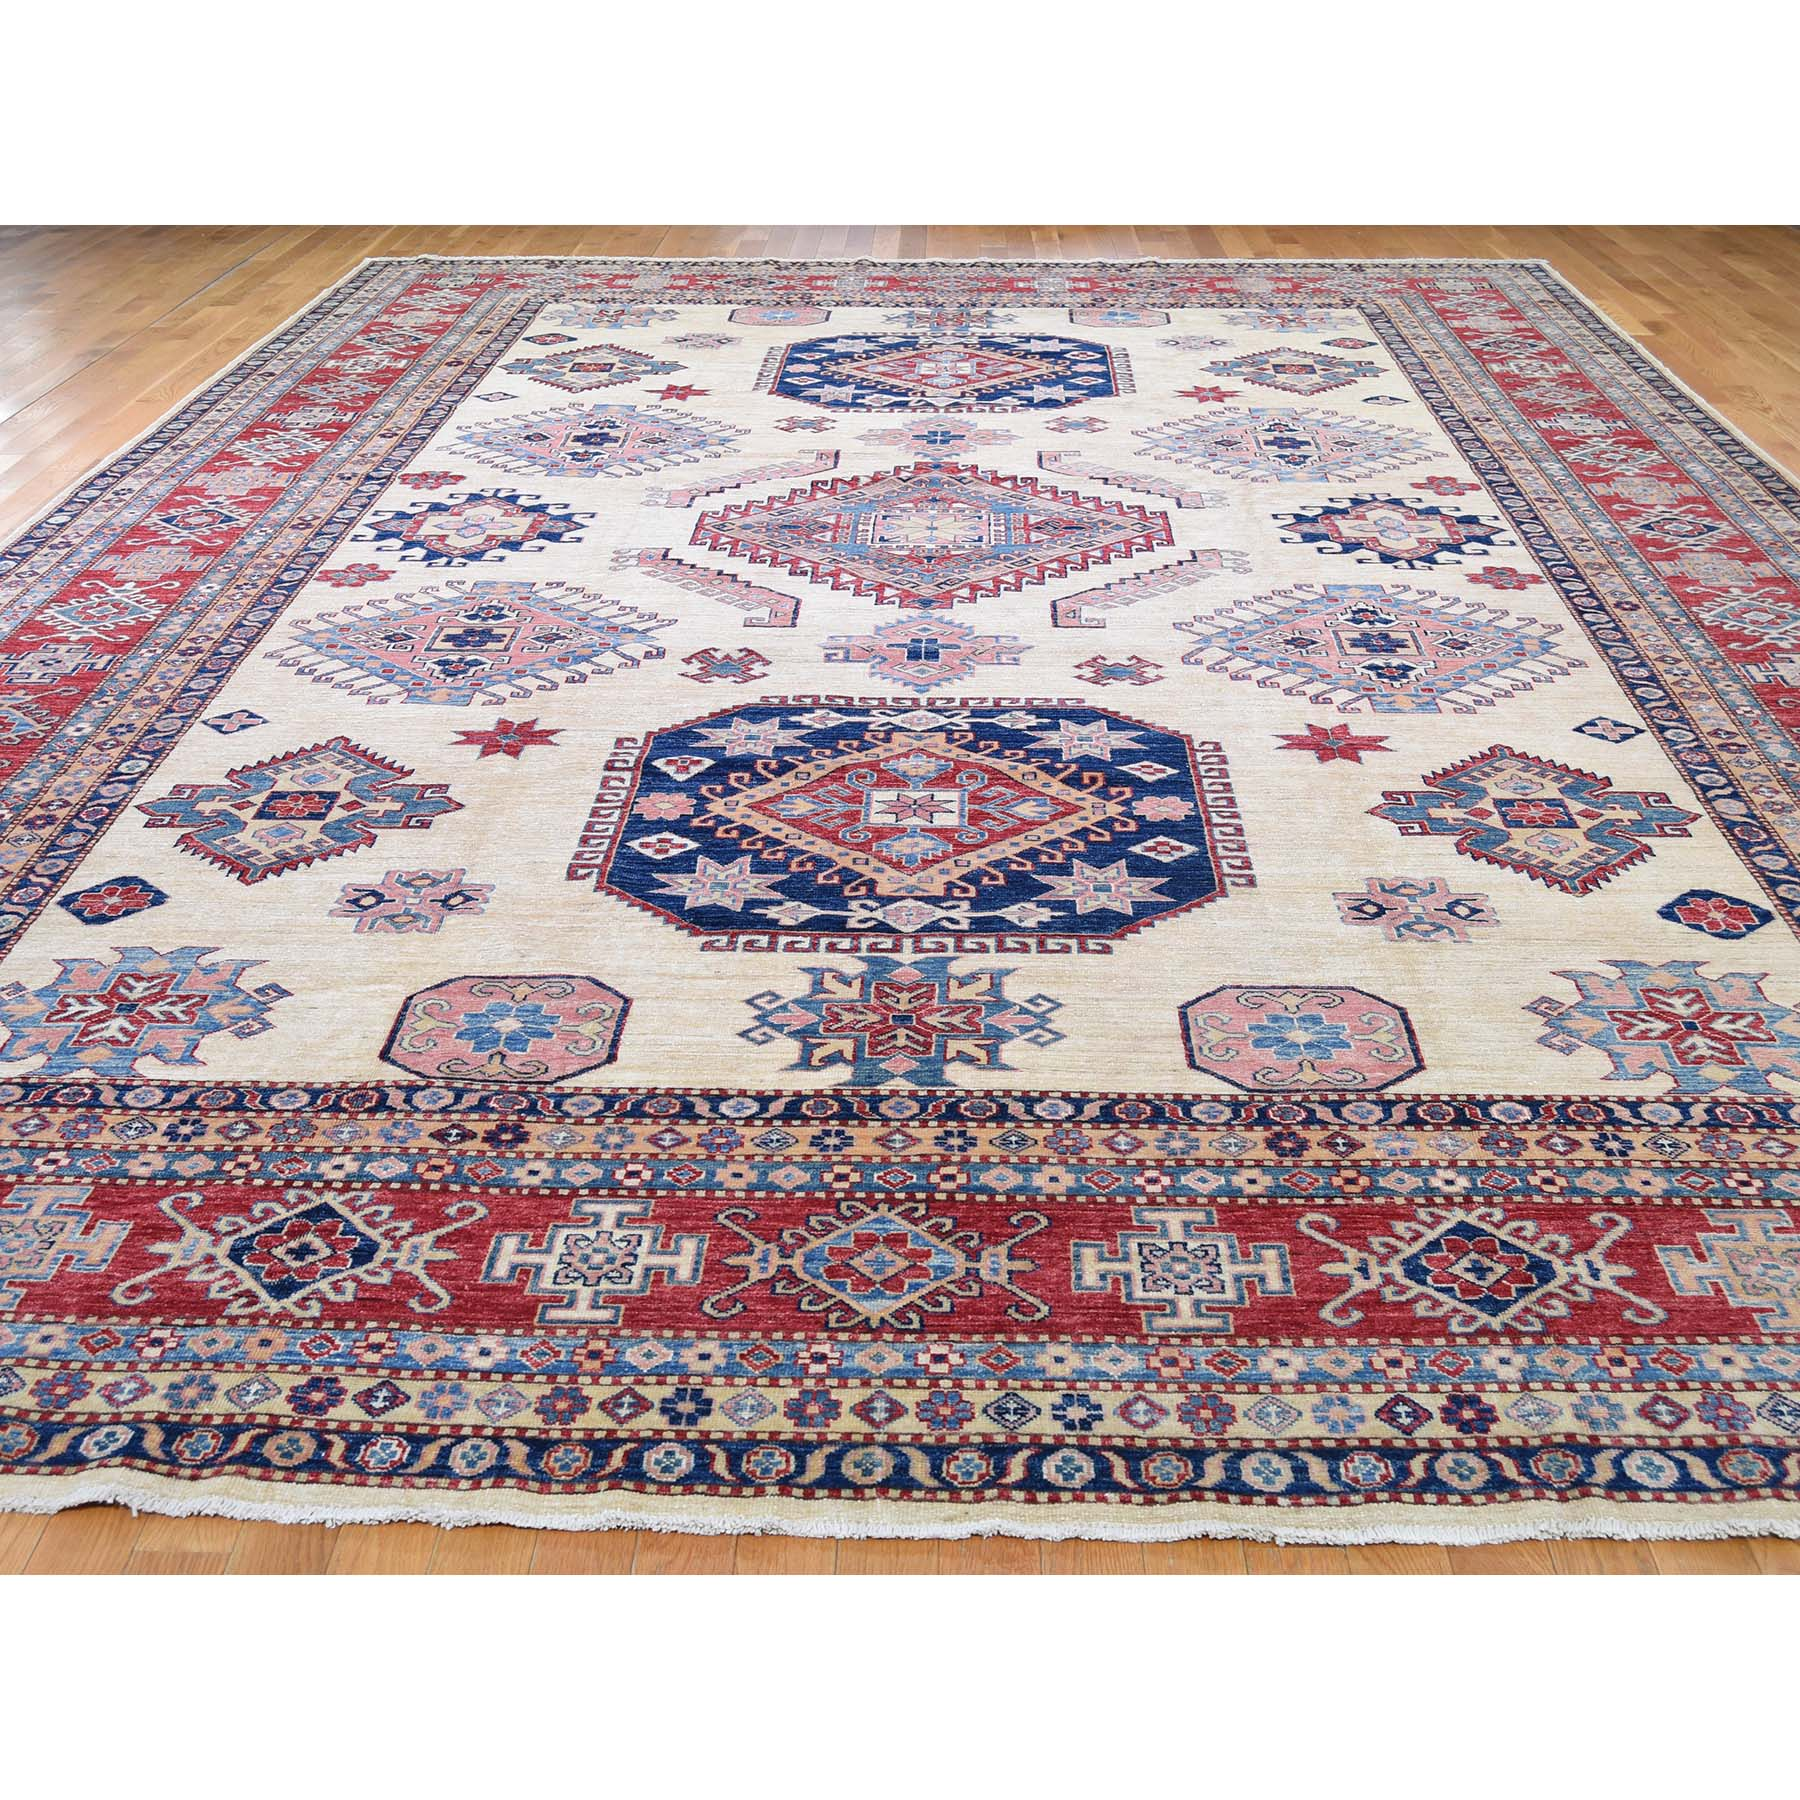 11-8 x16-6  Oversize Ivory Super Kazak Pure Wool Hand Knotted Oriental Rug